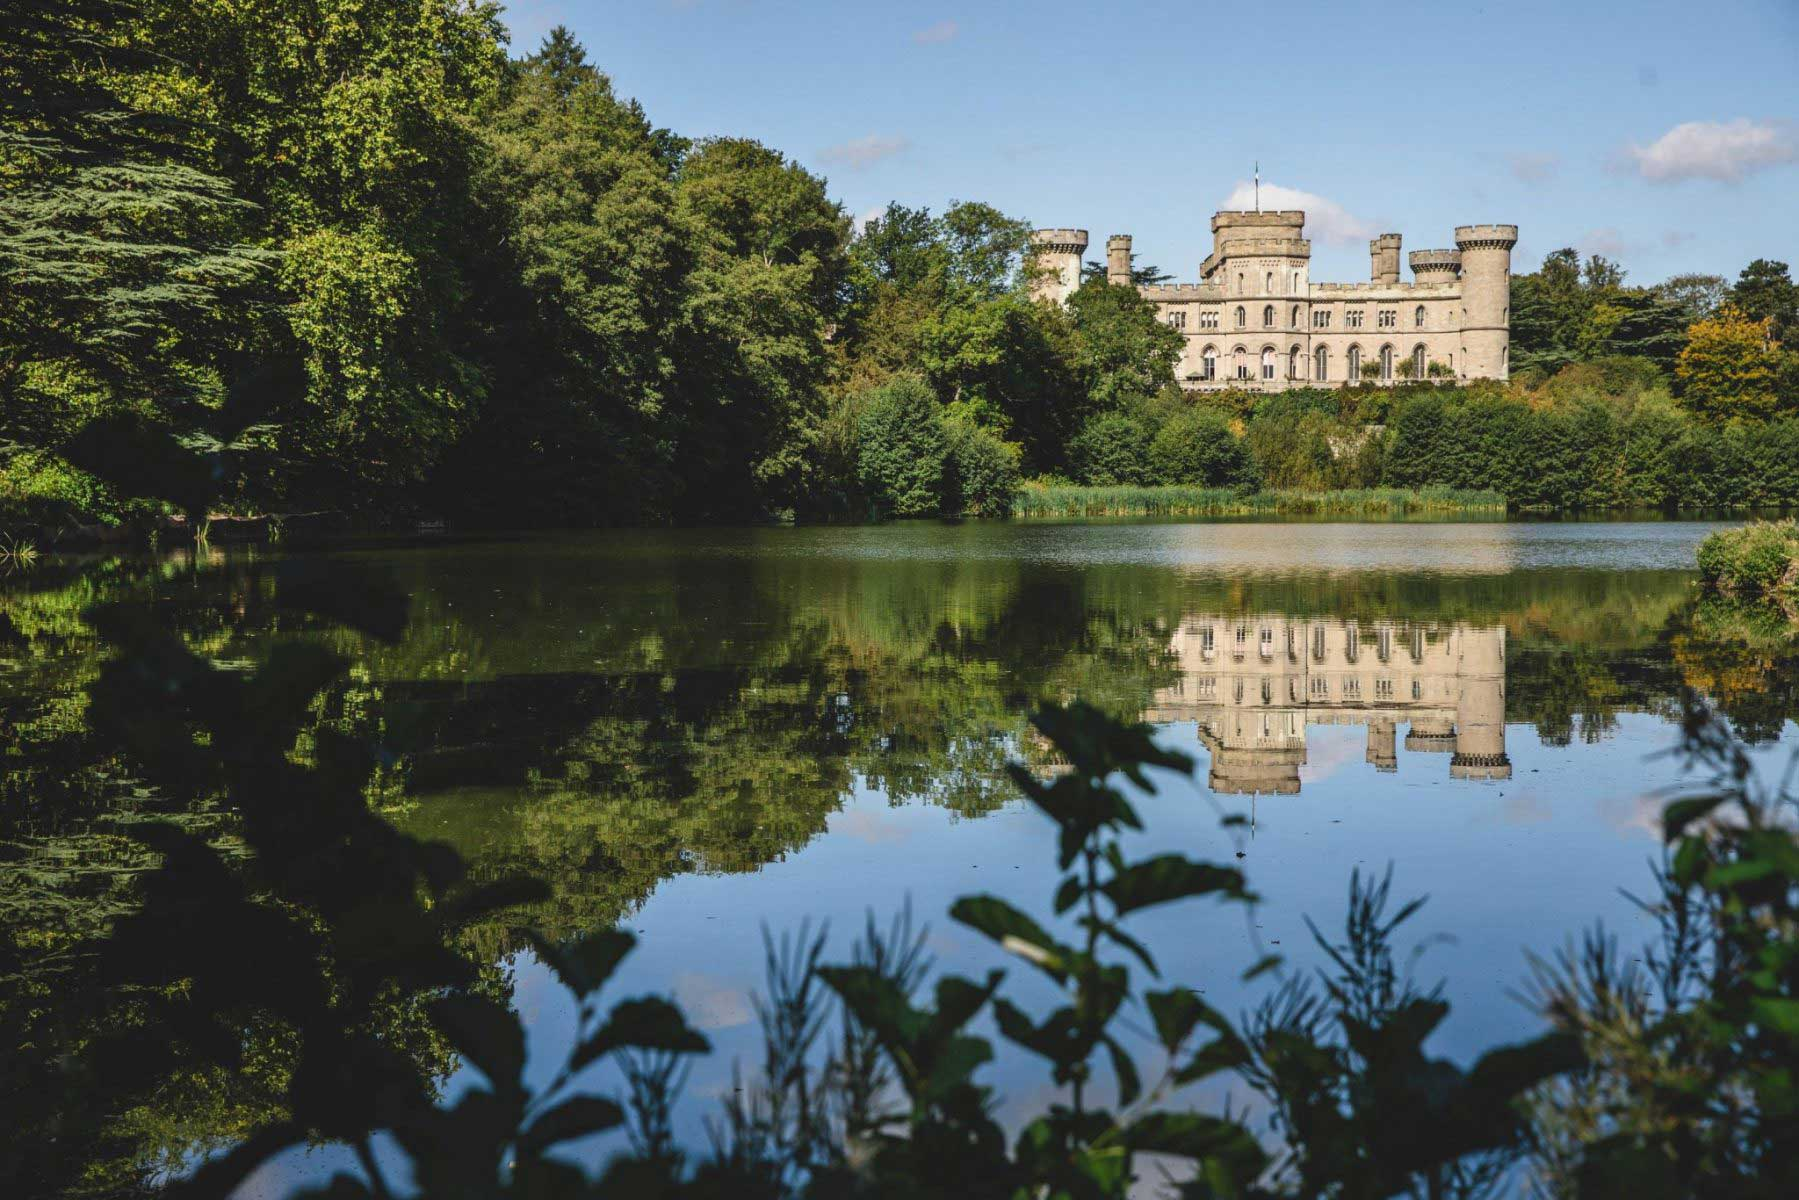 Eastnor Castle from across the Lake